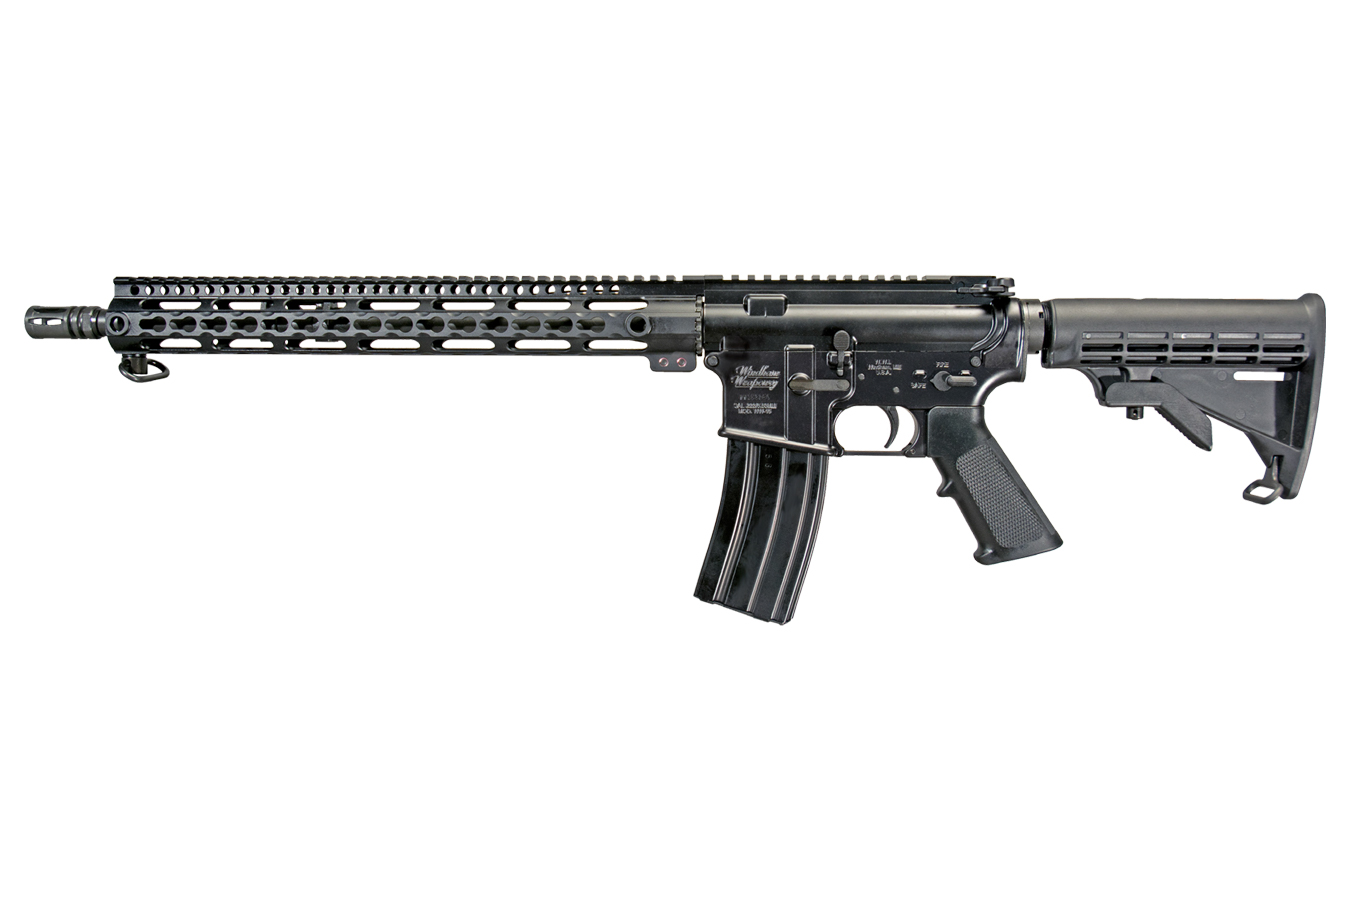 No. 12 Best Selling: WINDHAM WEAPONRY WW-15 5.56MM AR-15 WITH M4 PROFILE AND KEYMOD RAIL